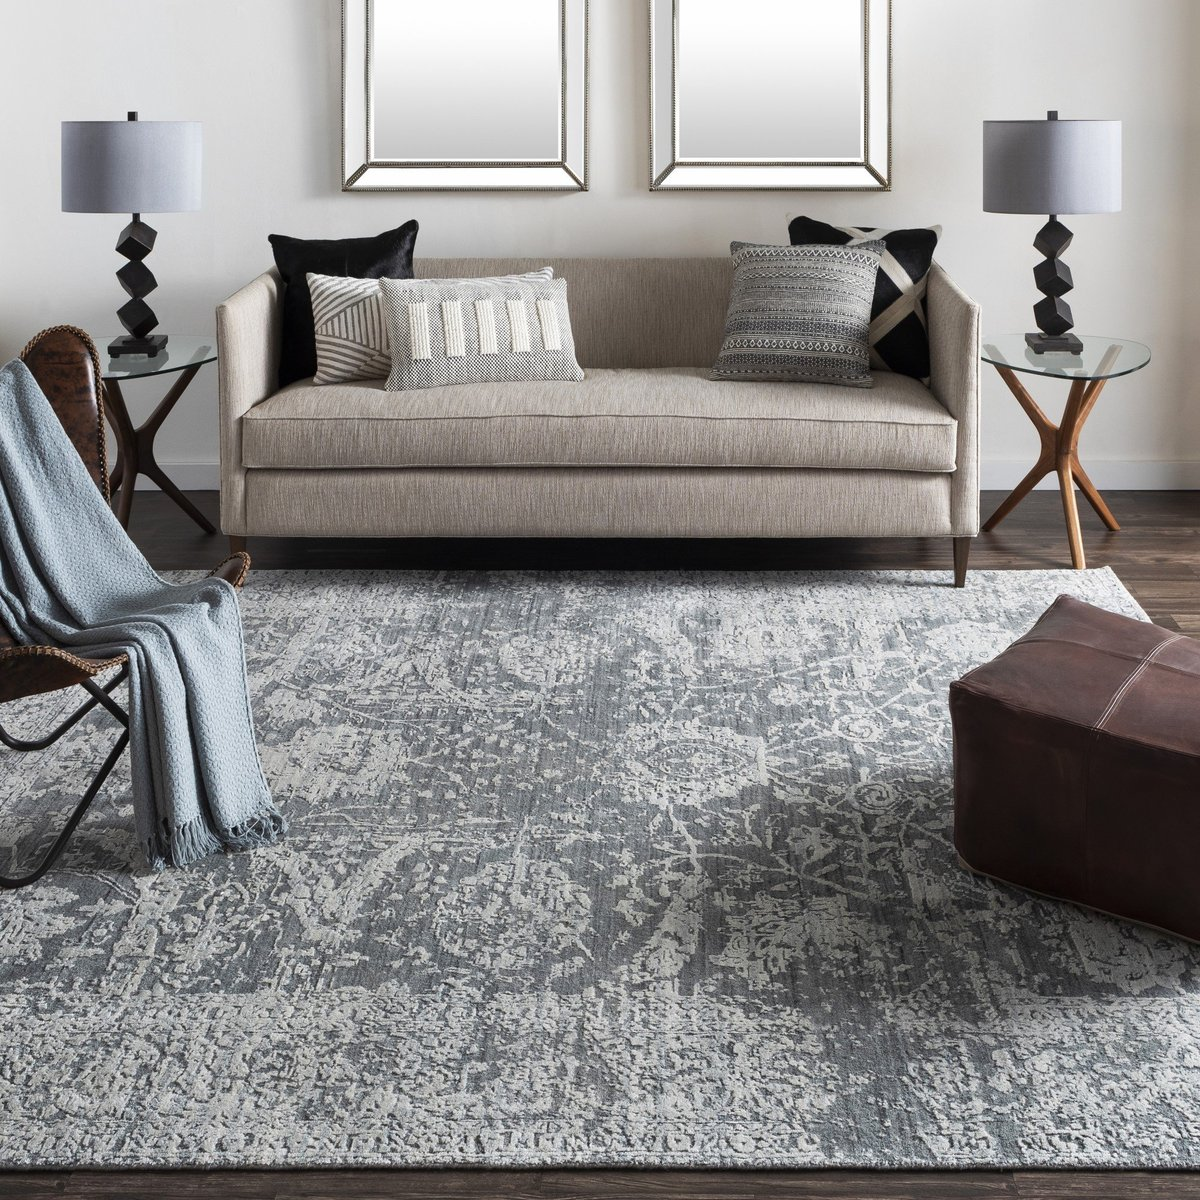 Adding traditional style with living room decor